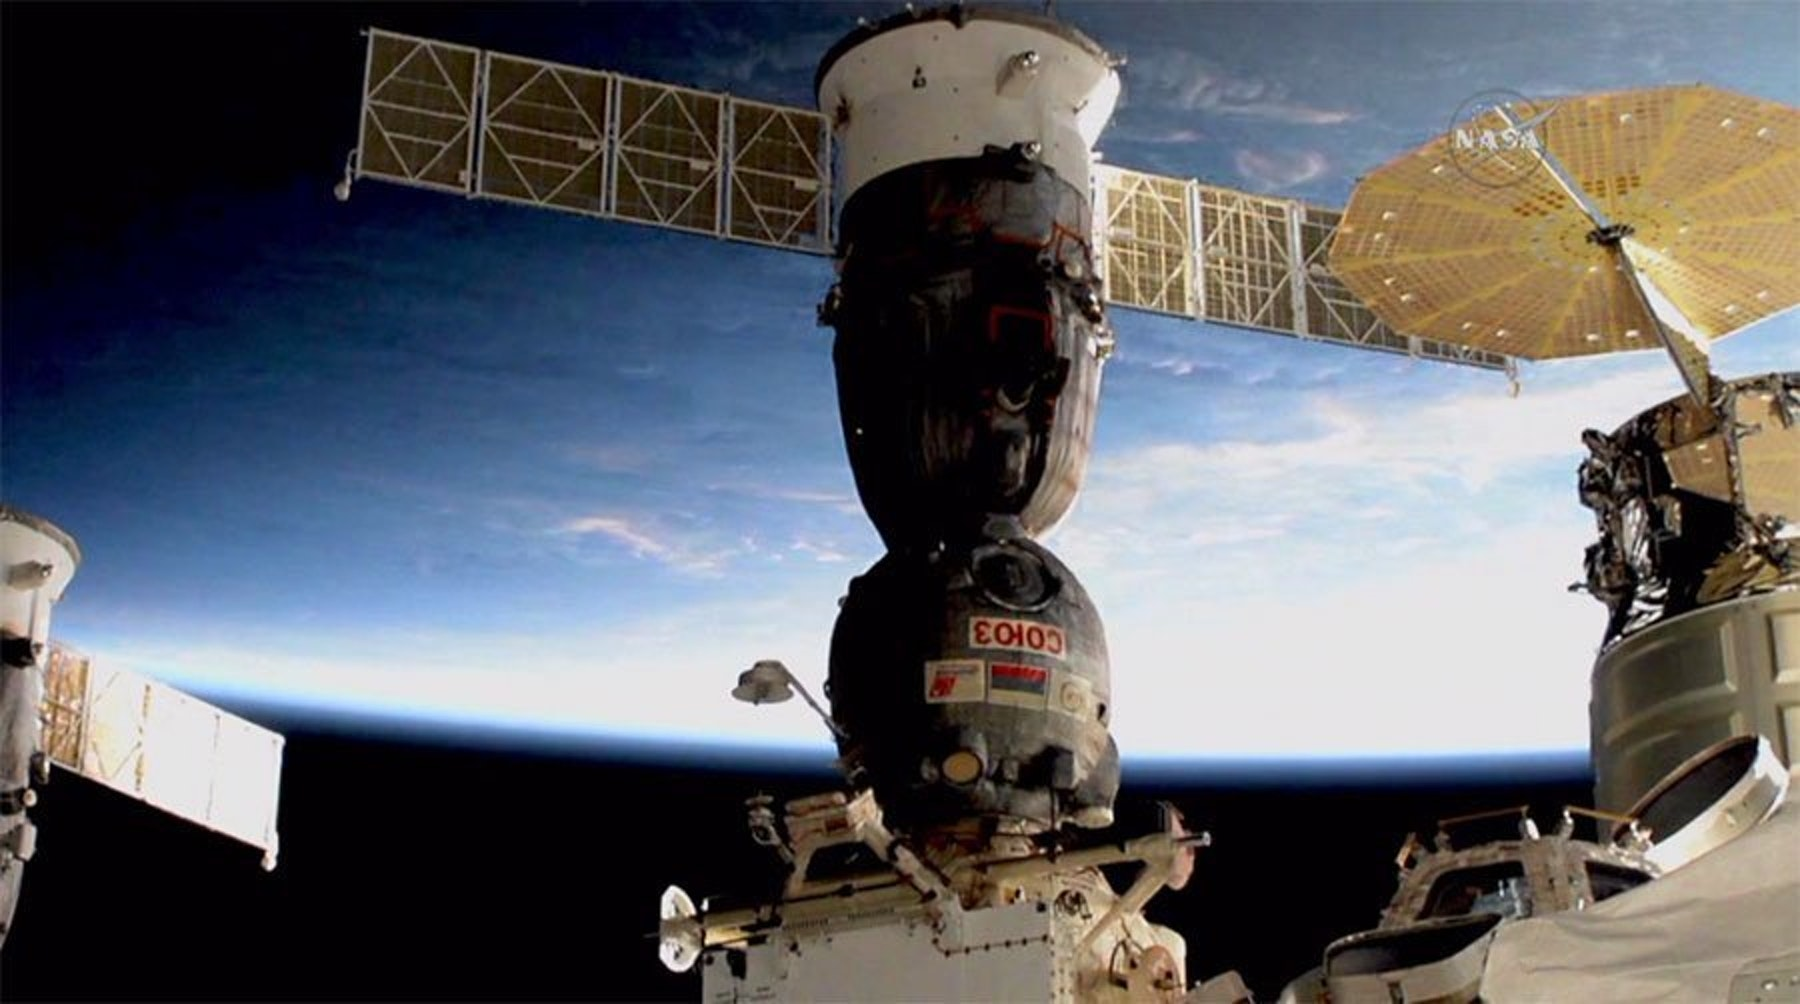 A view of the Soyuz before Rubins and crew departed the space station.